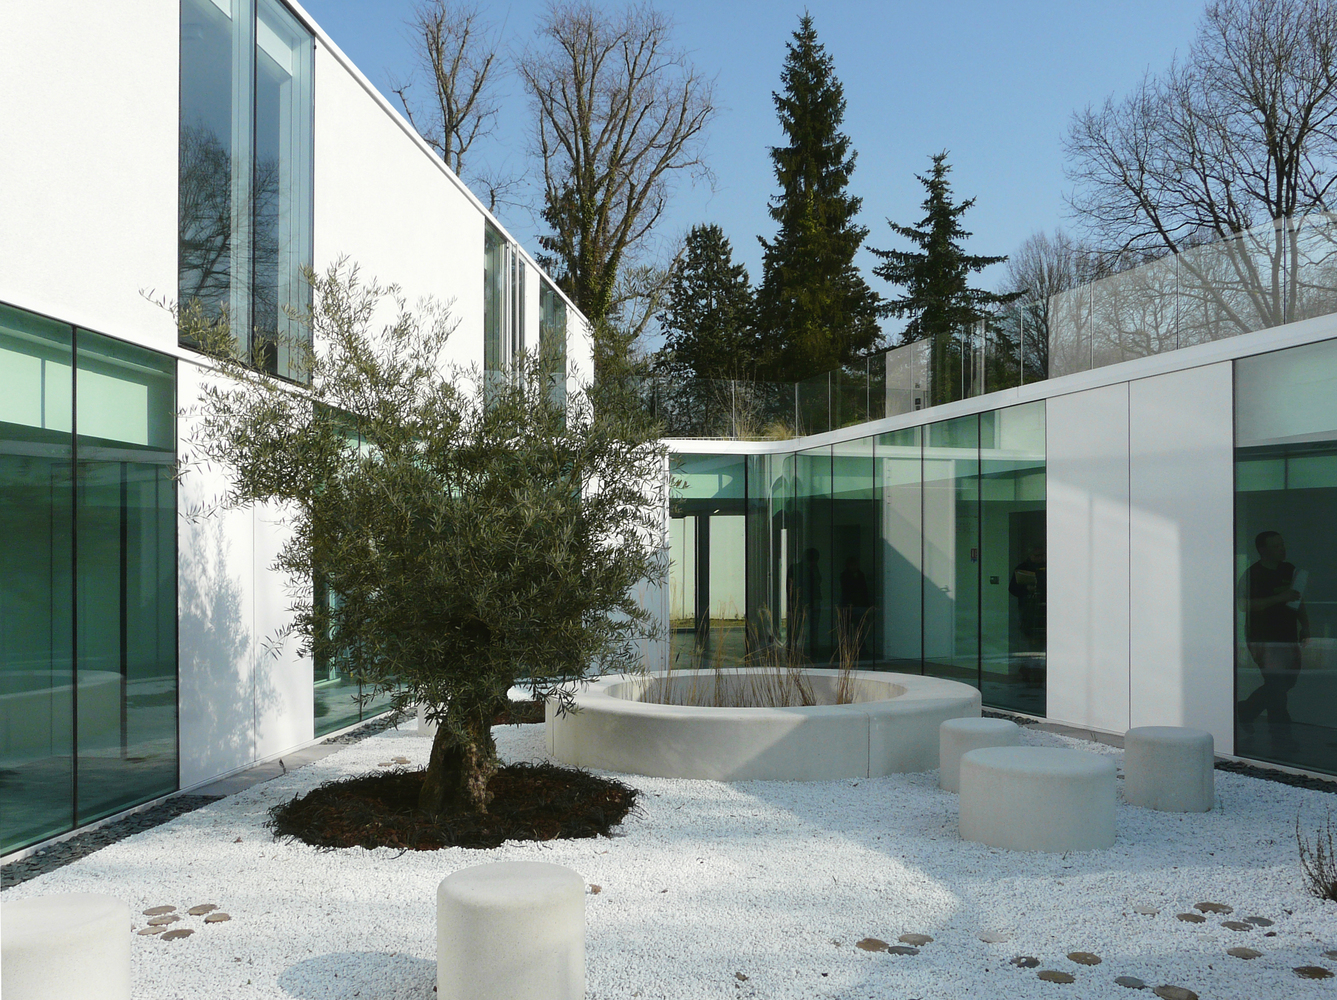 Architecte Bures Sur Yvette child psychiatry hospitalization building of 12 beds in